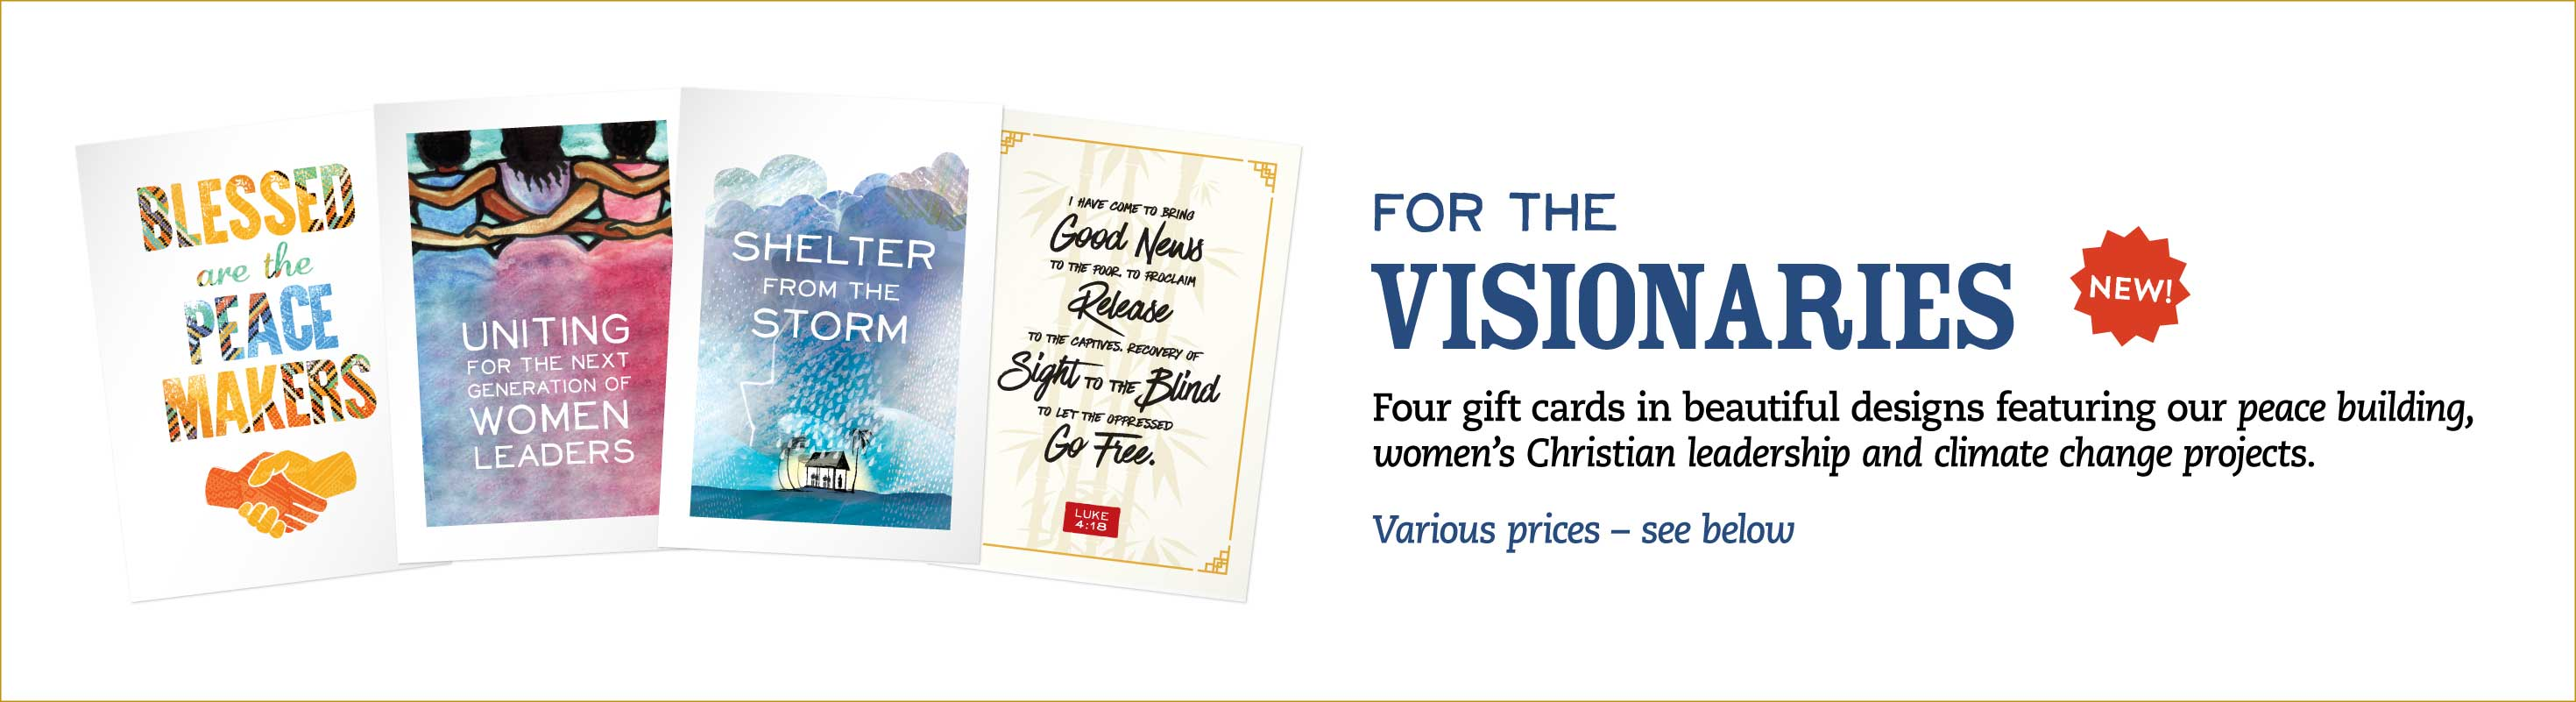 For the Visionaries: Four gift cards in beautiful designs featuring our peace building, women's Christian Leadership and climate change projects.